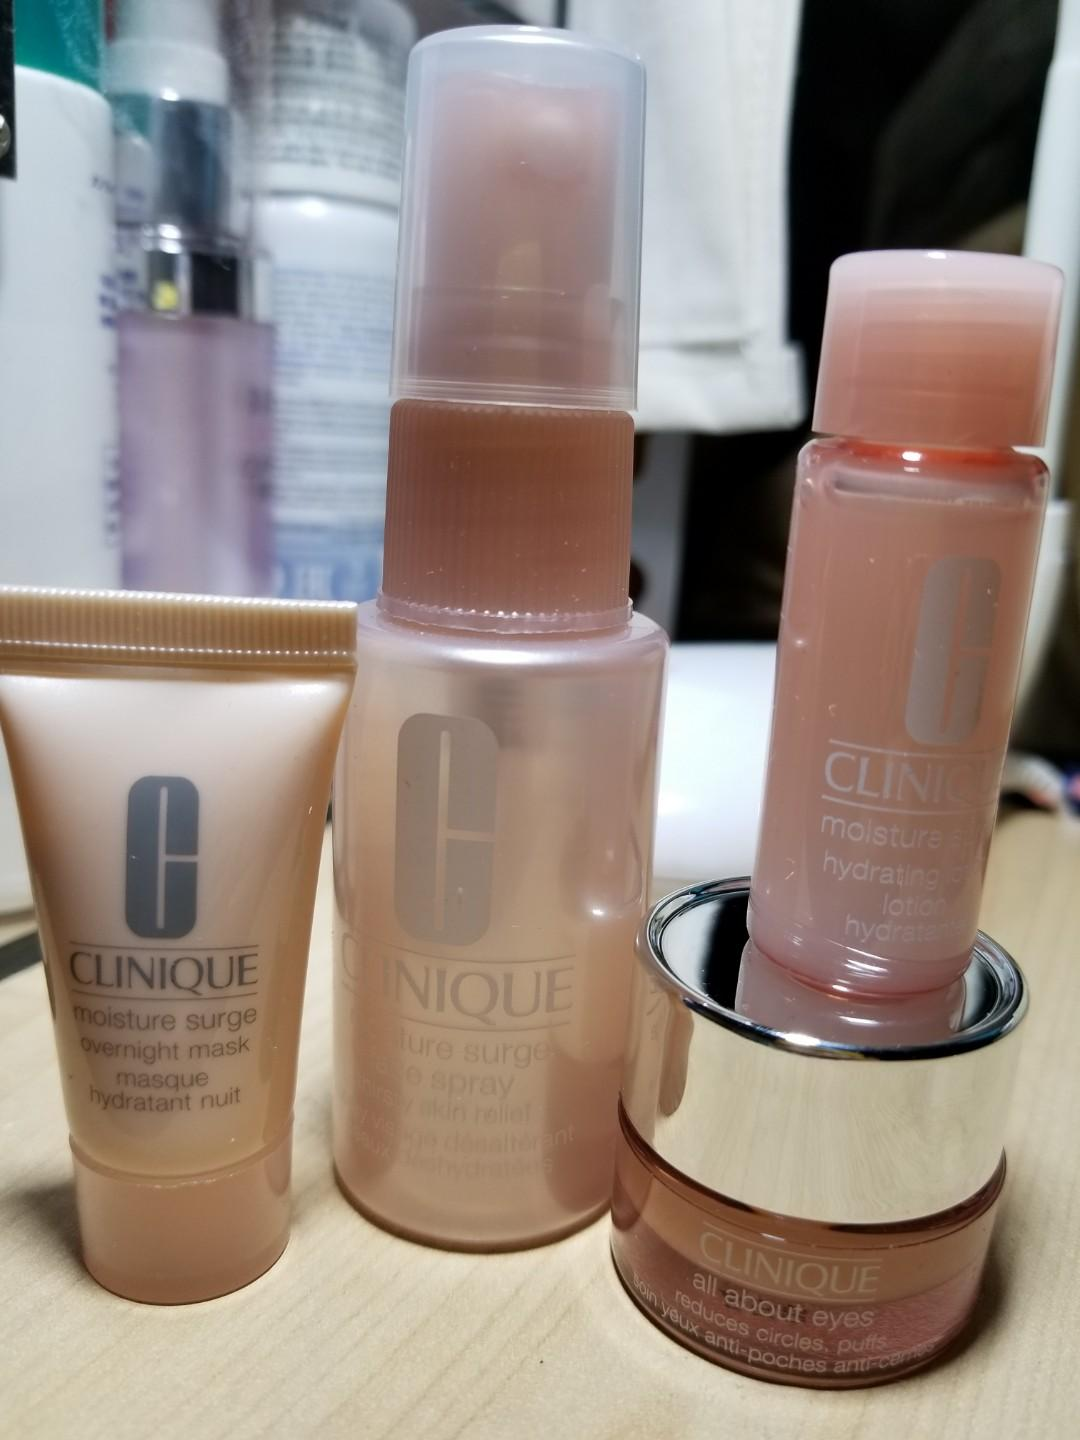 Clinique Moisture Surge travel set